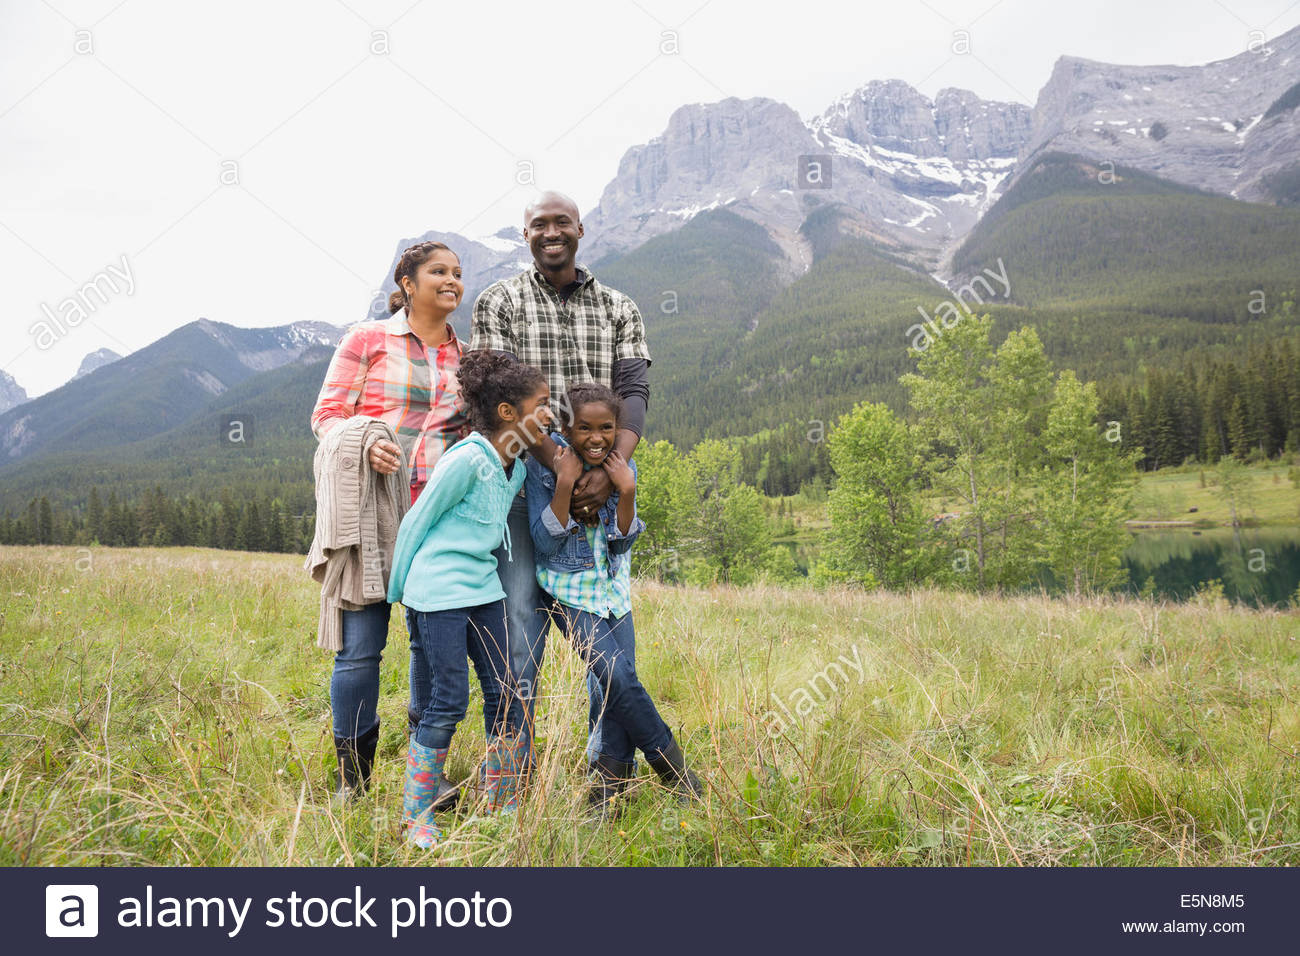 Family standing in grassy field - Stock Image